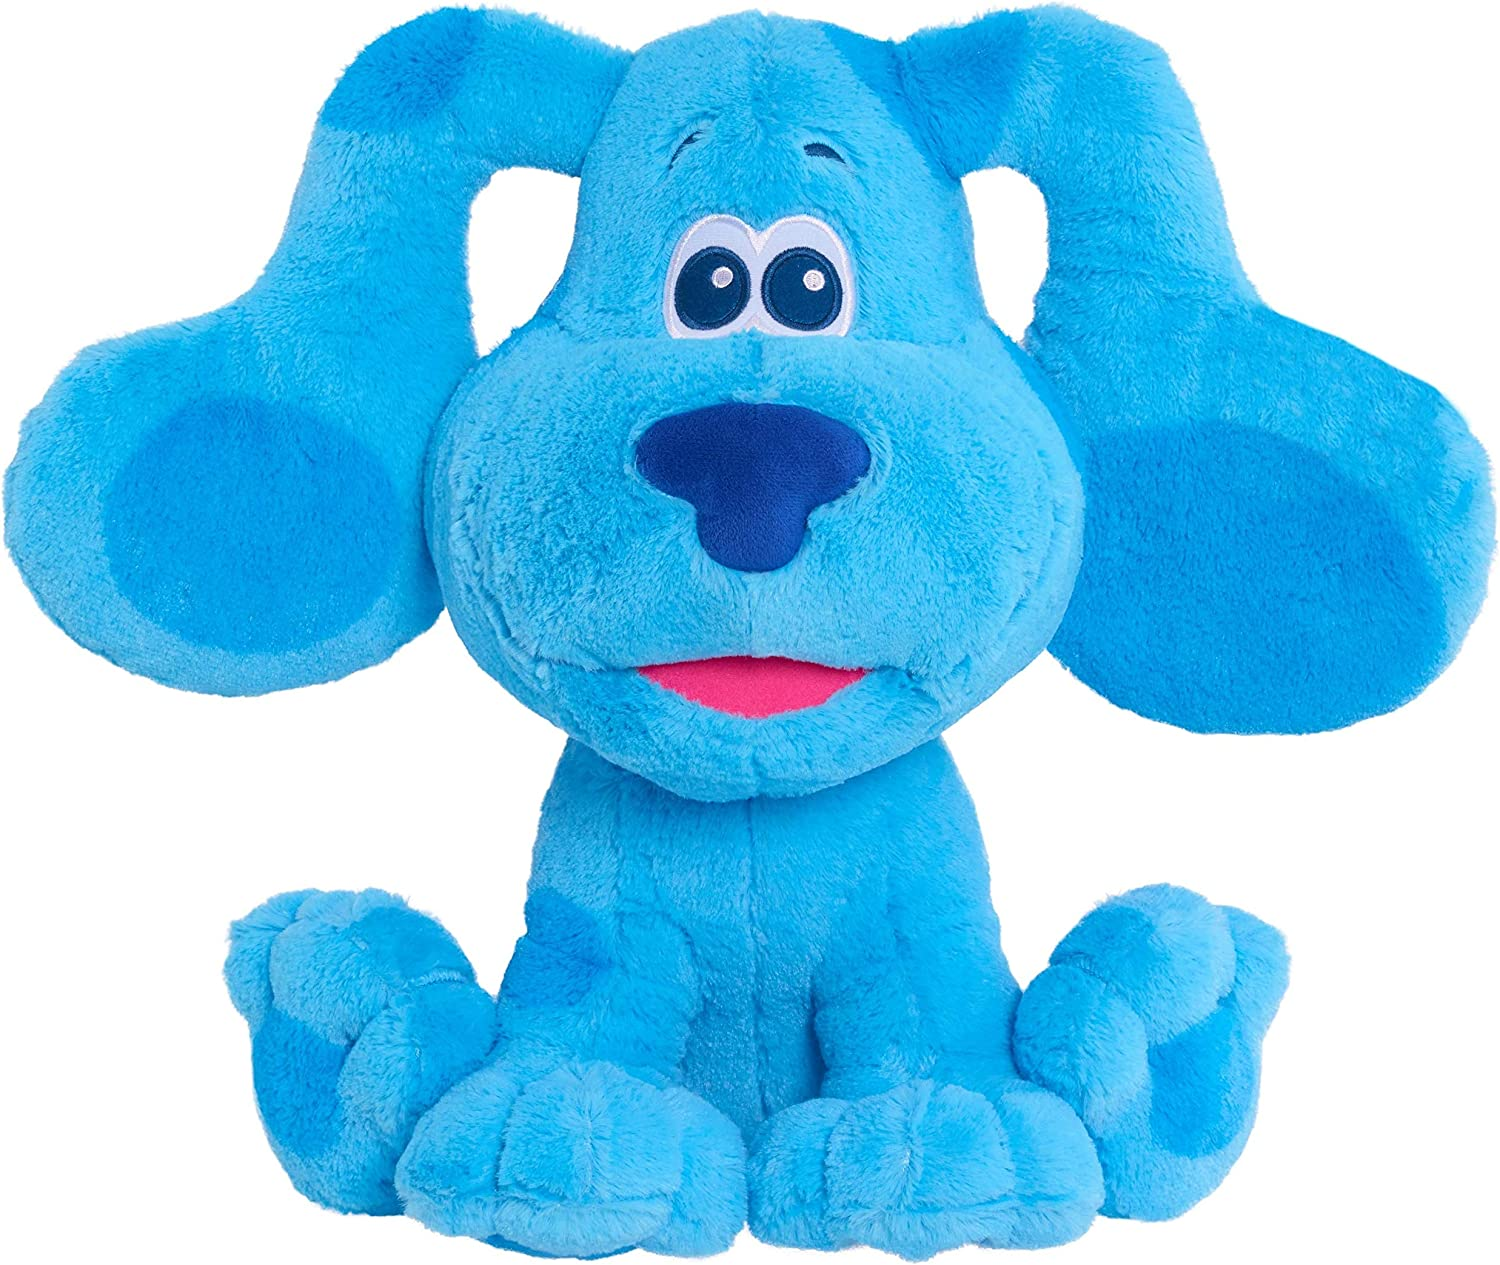 Blue's Clues & You! Big Hugs Blue, 16-inch Plush: Toys & Games